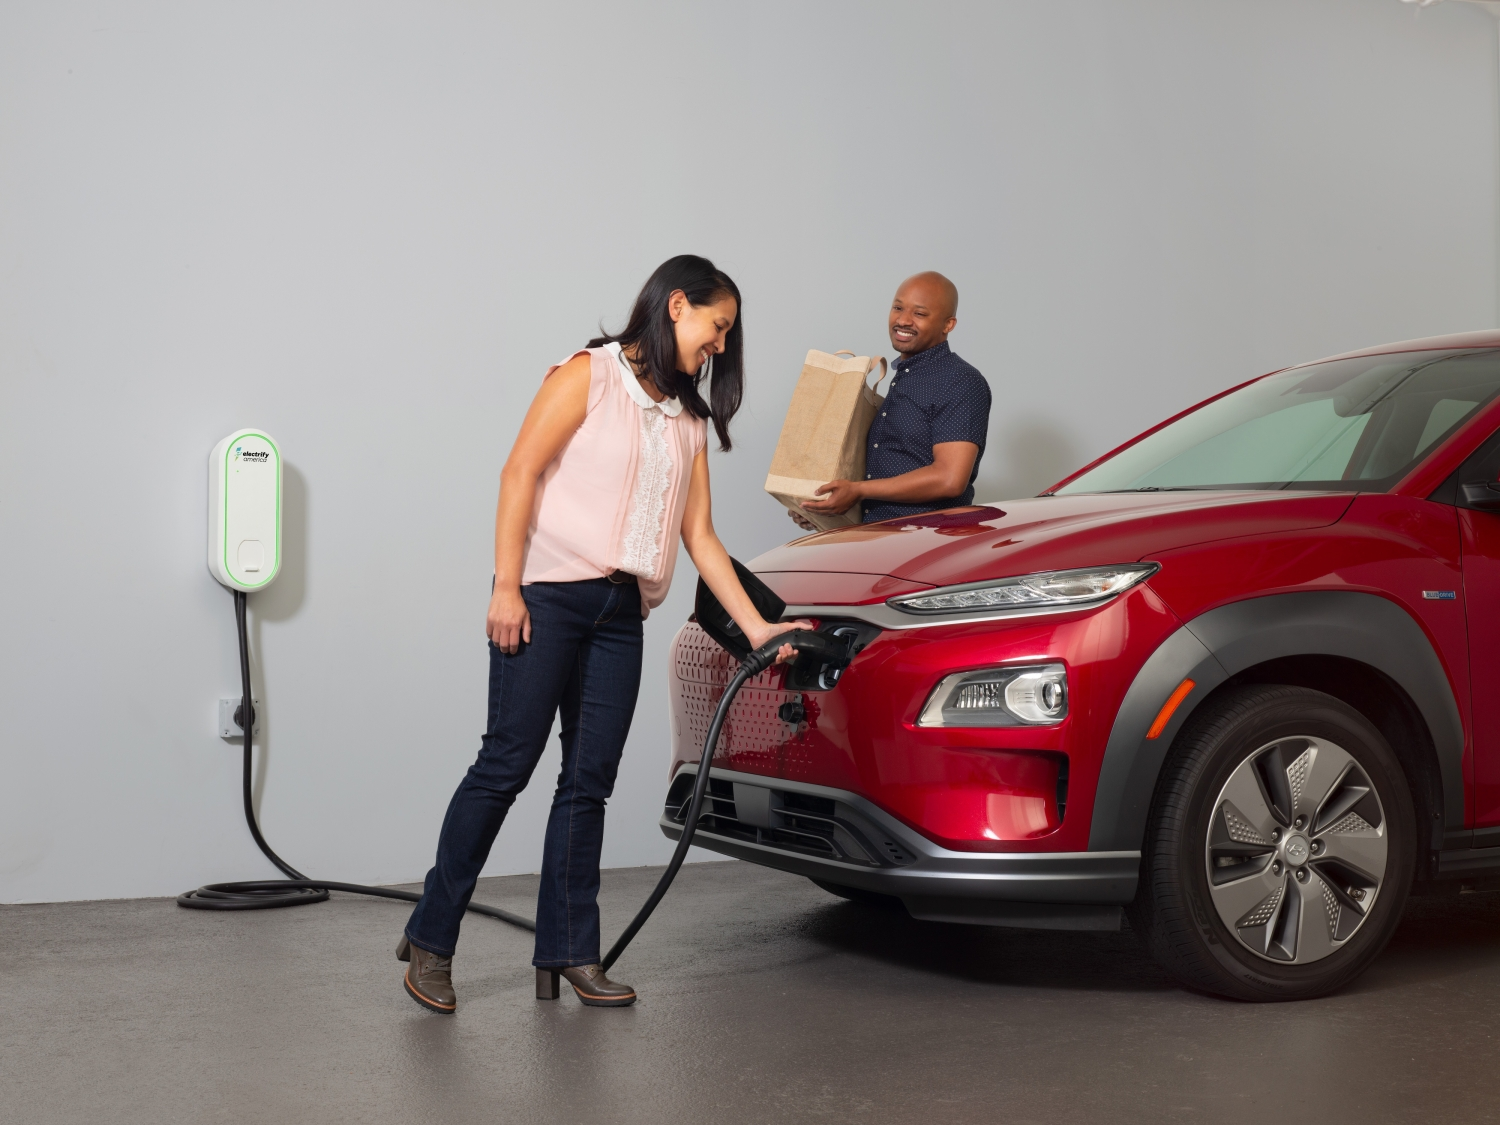 Need an EV home charger installed, and clarity on incentives? Thank the VW diesel settlement